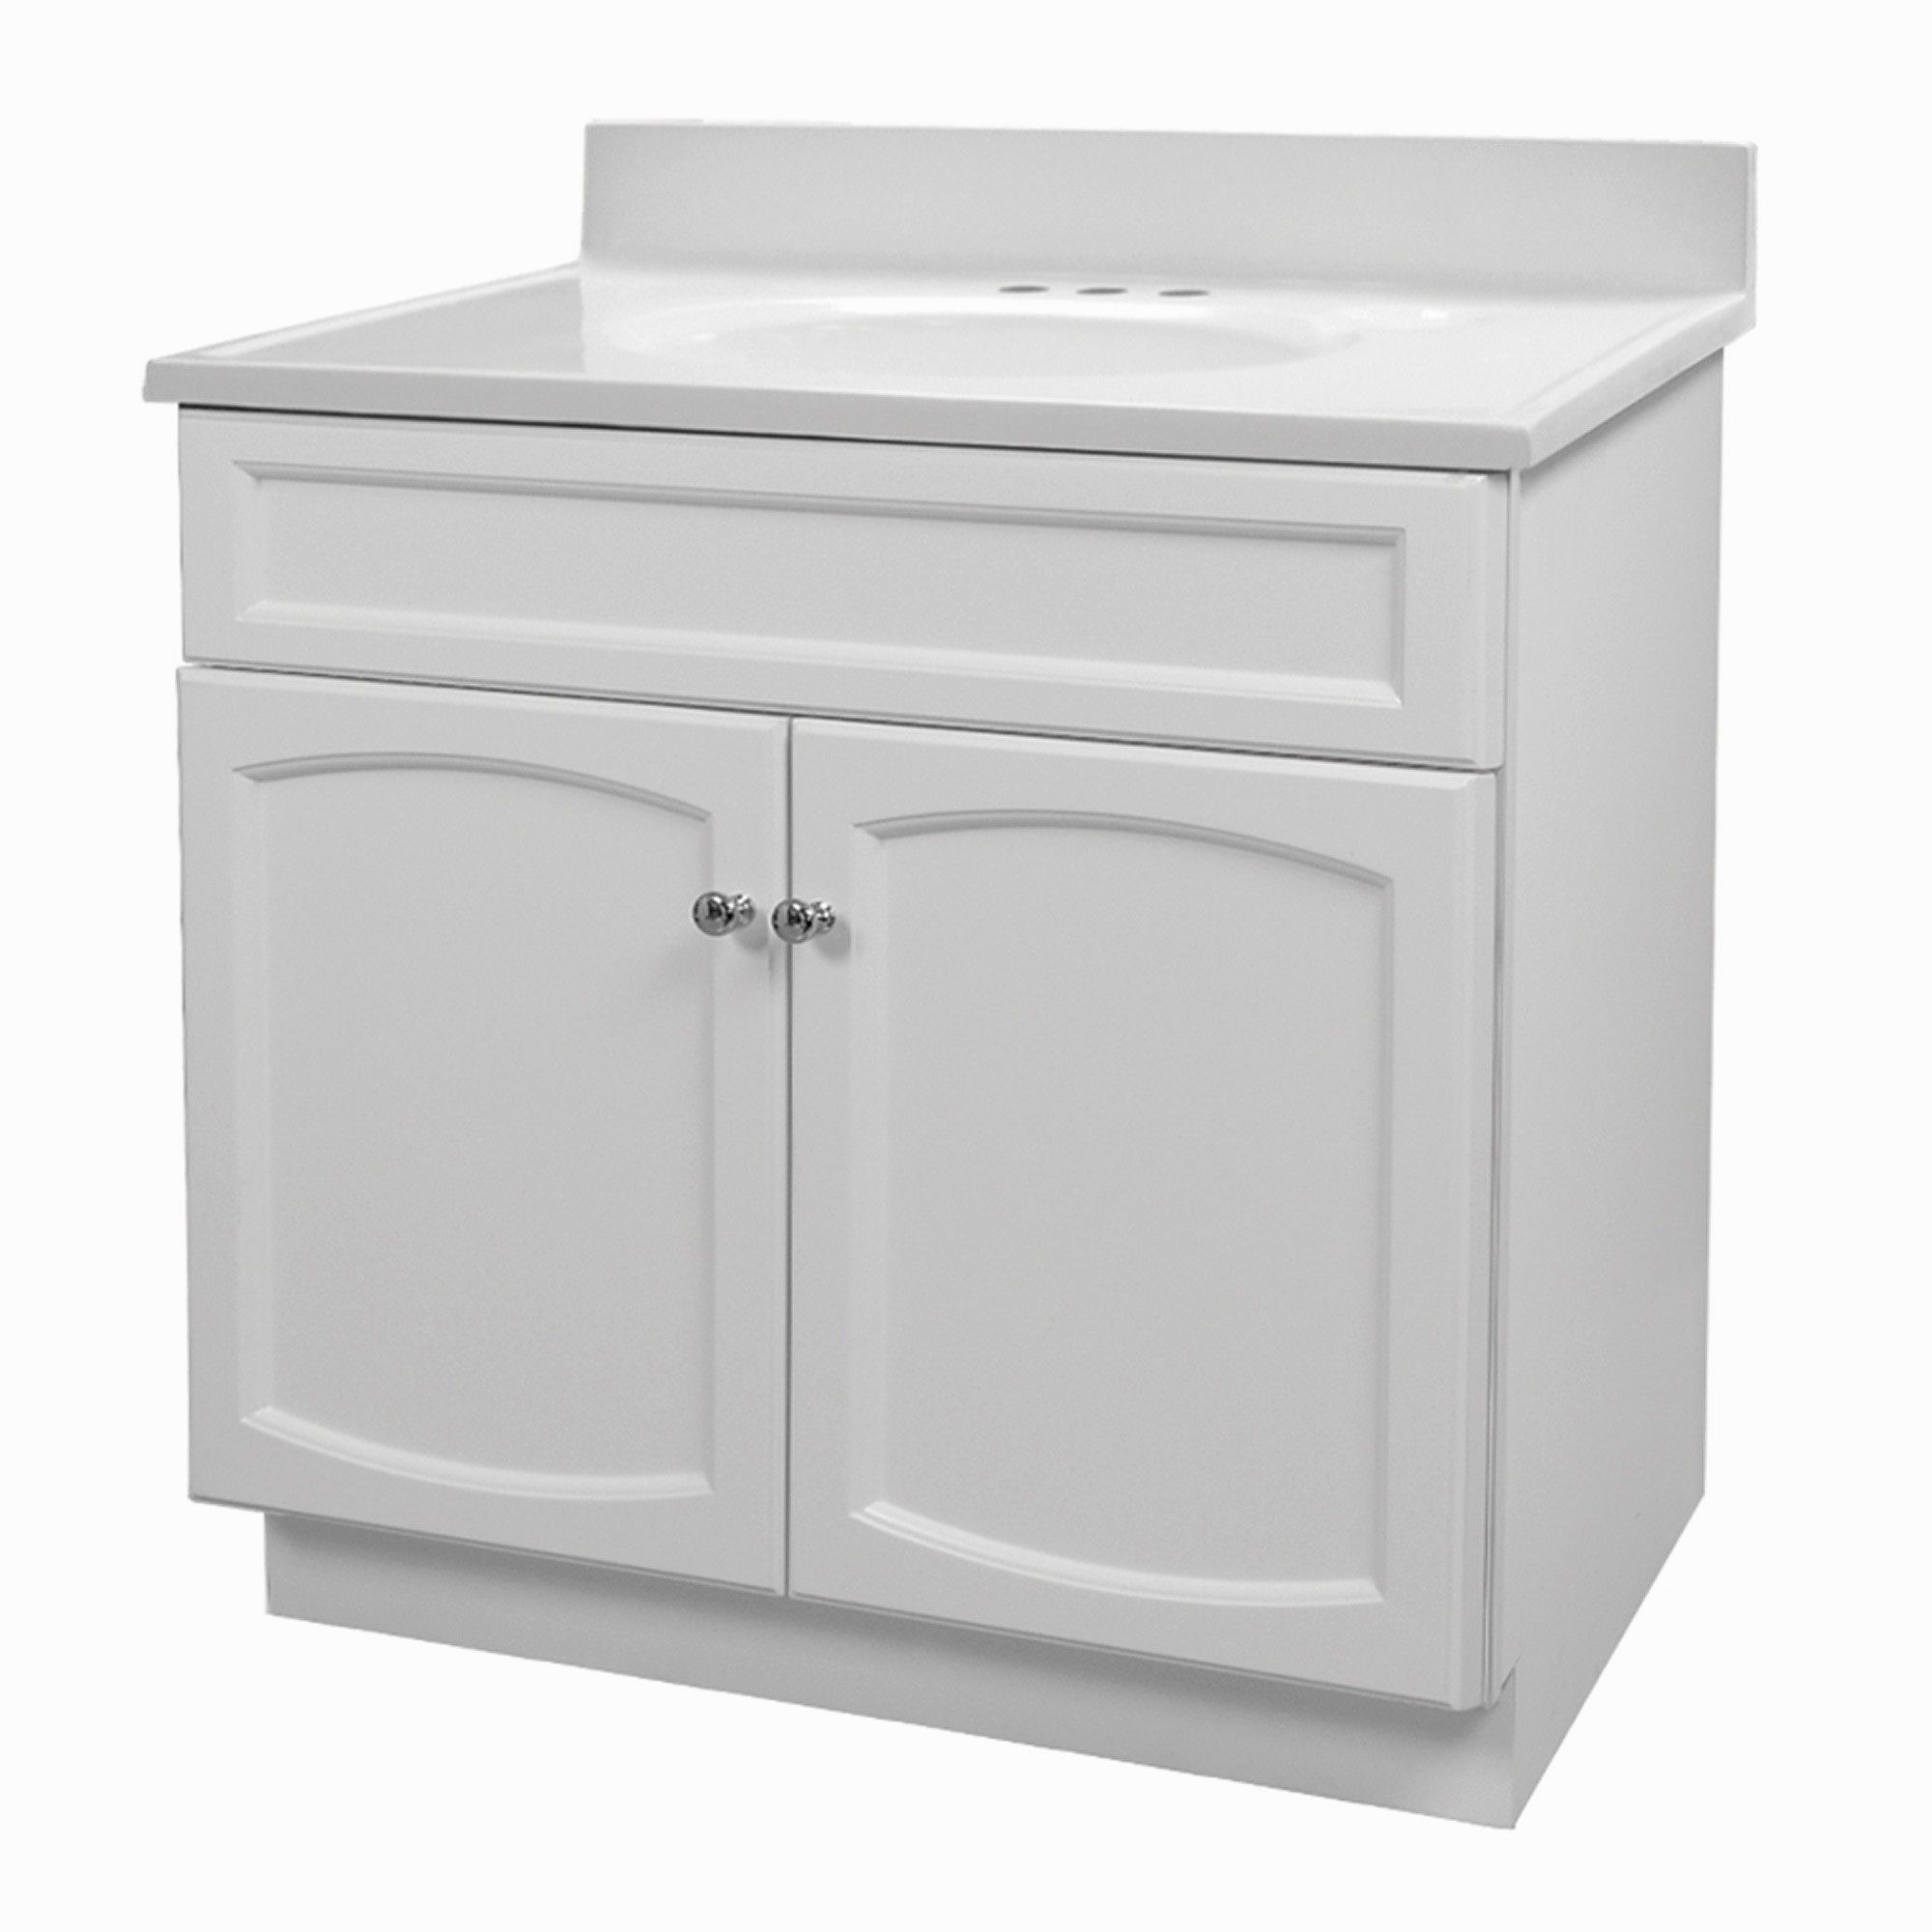 finest bathroom vanity 30 inch photo-Fantastic Bathroom Vanity 30 Inch Model